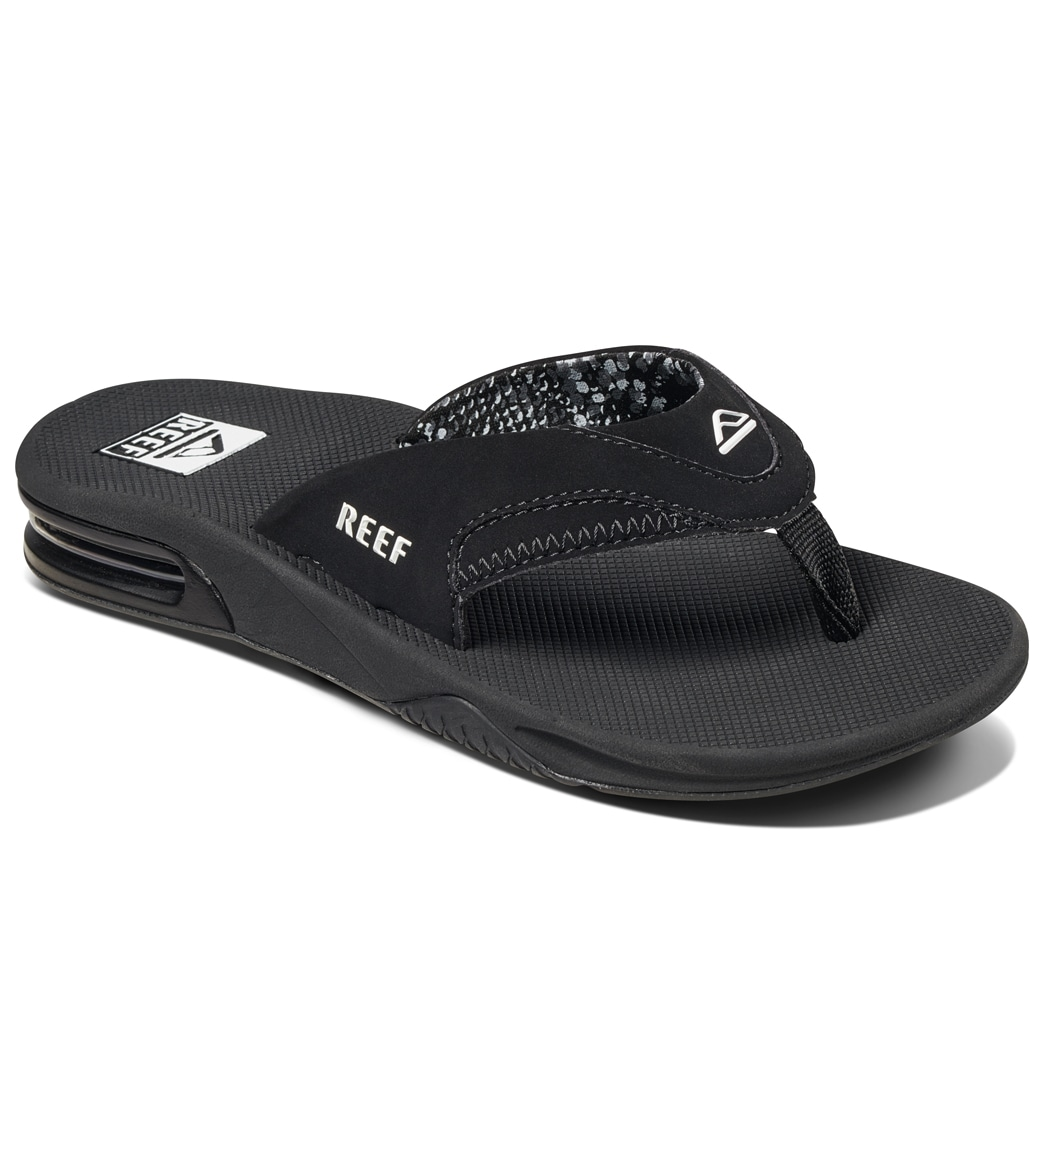 Reef Women s Fanning Flip Flop at SwimOutlet.com - Free Shipping e4c33f182